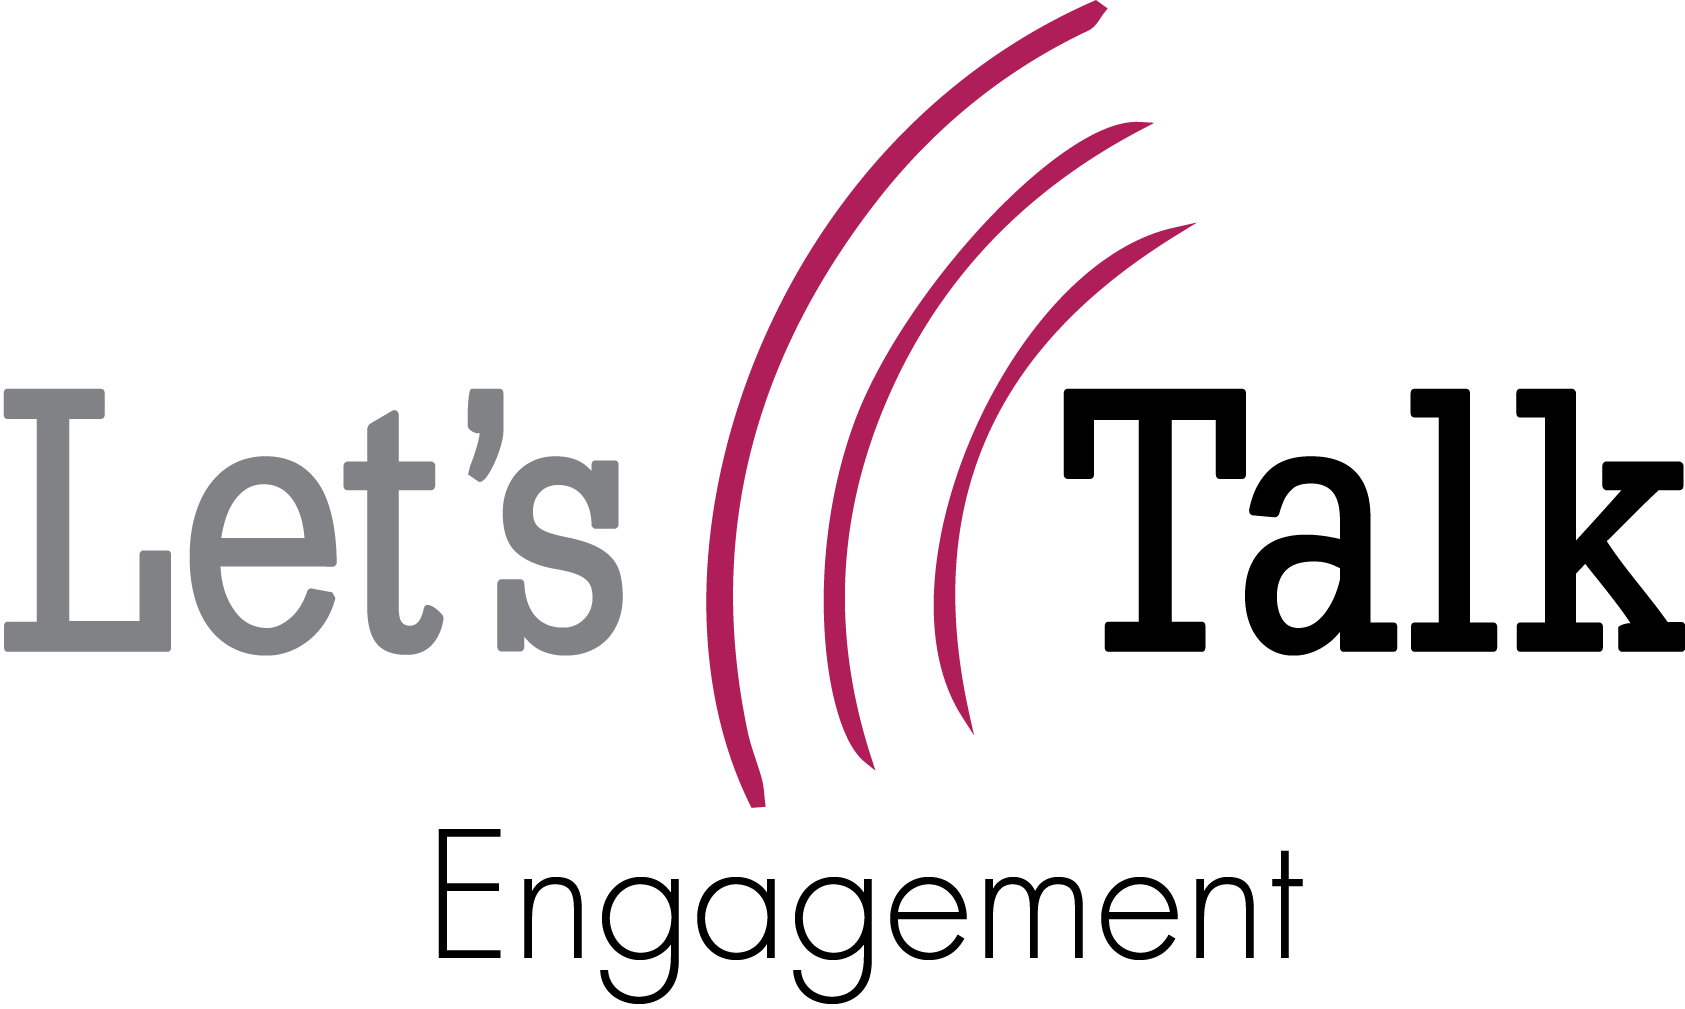 lets-talk-logo